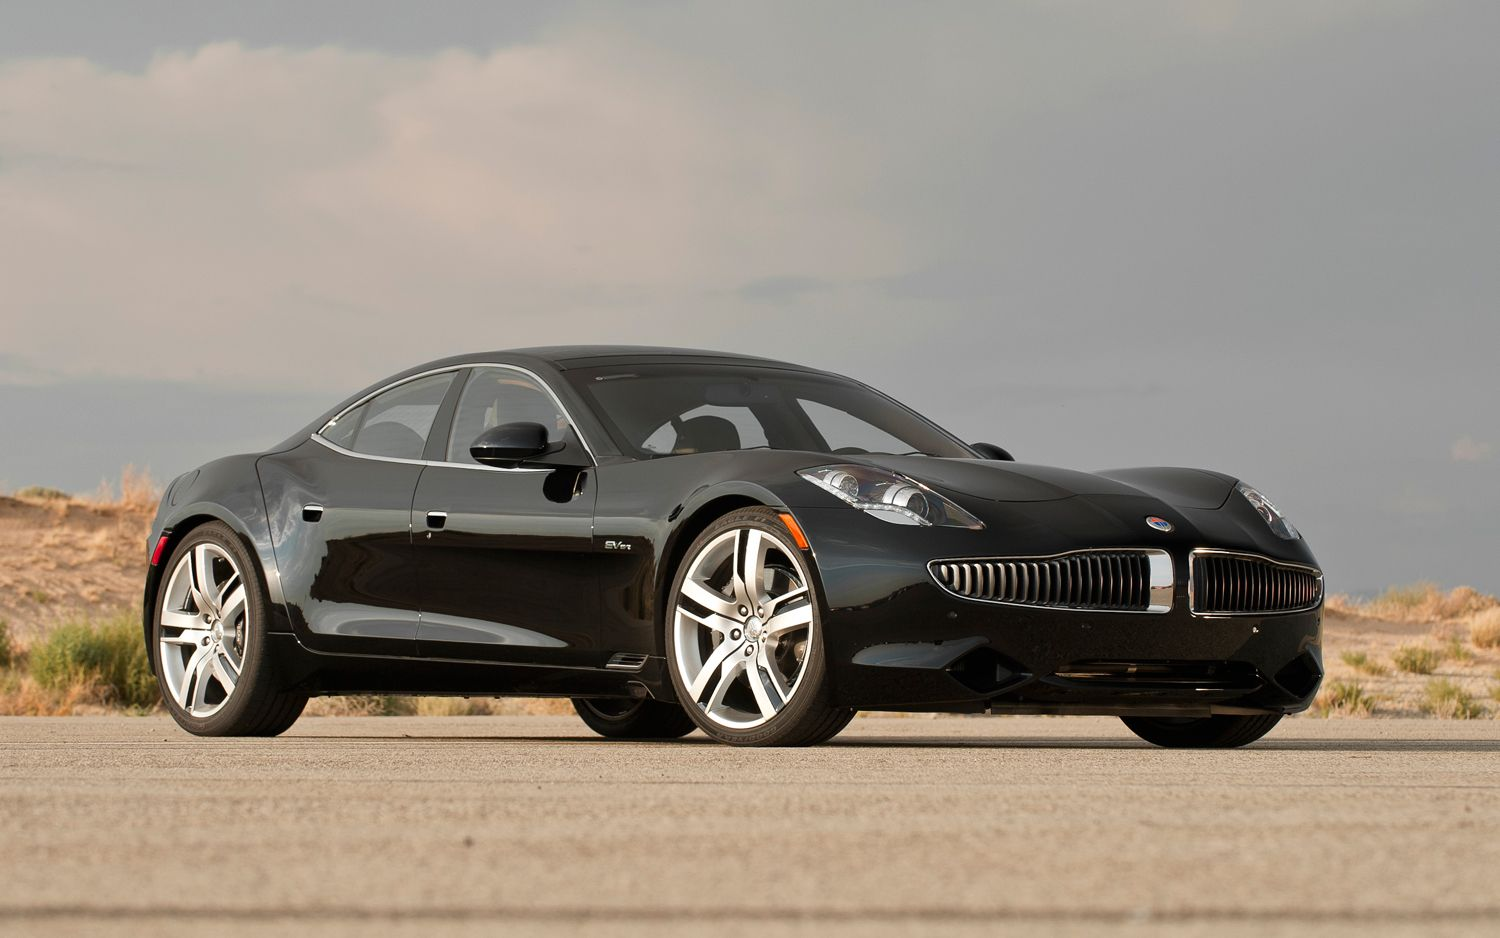 Third Party Tuv Test Gives 112 Mpg Rating To Fisker Karma